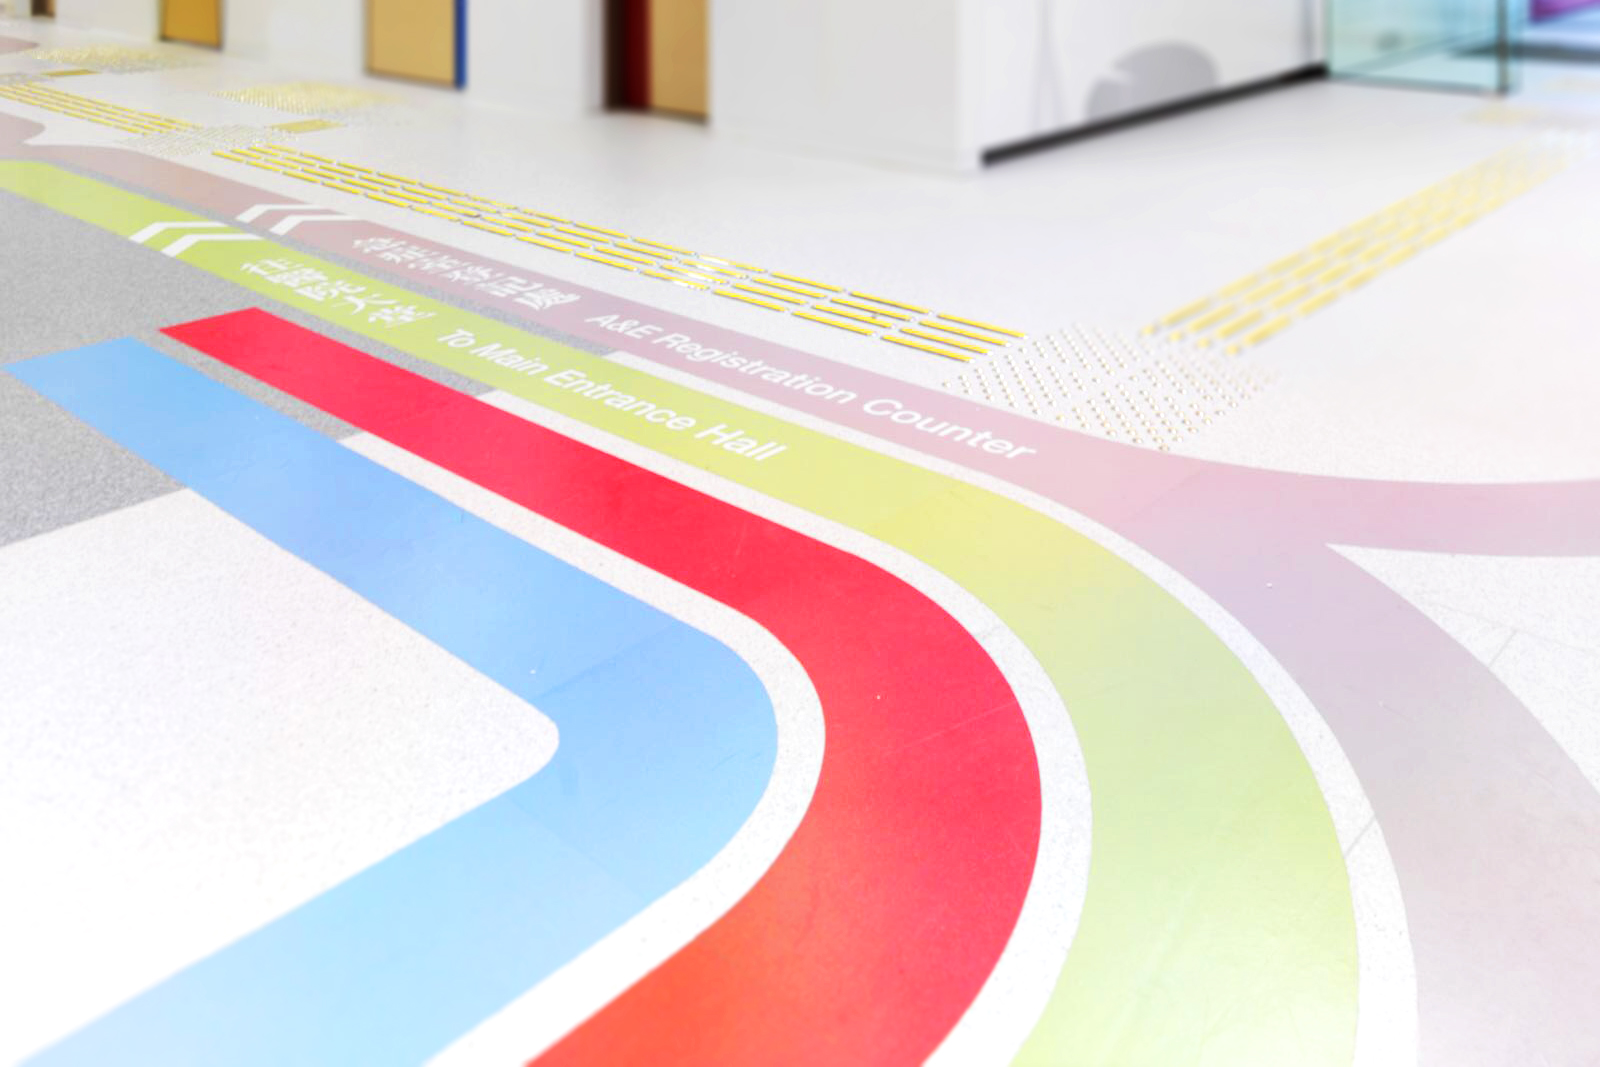 Colored guide lines on a hospital floor.